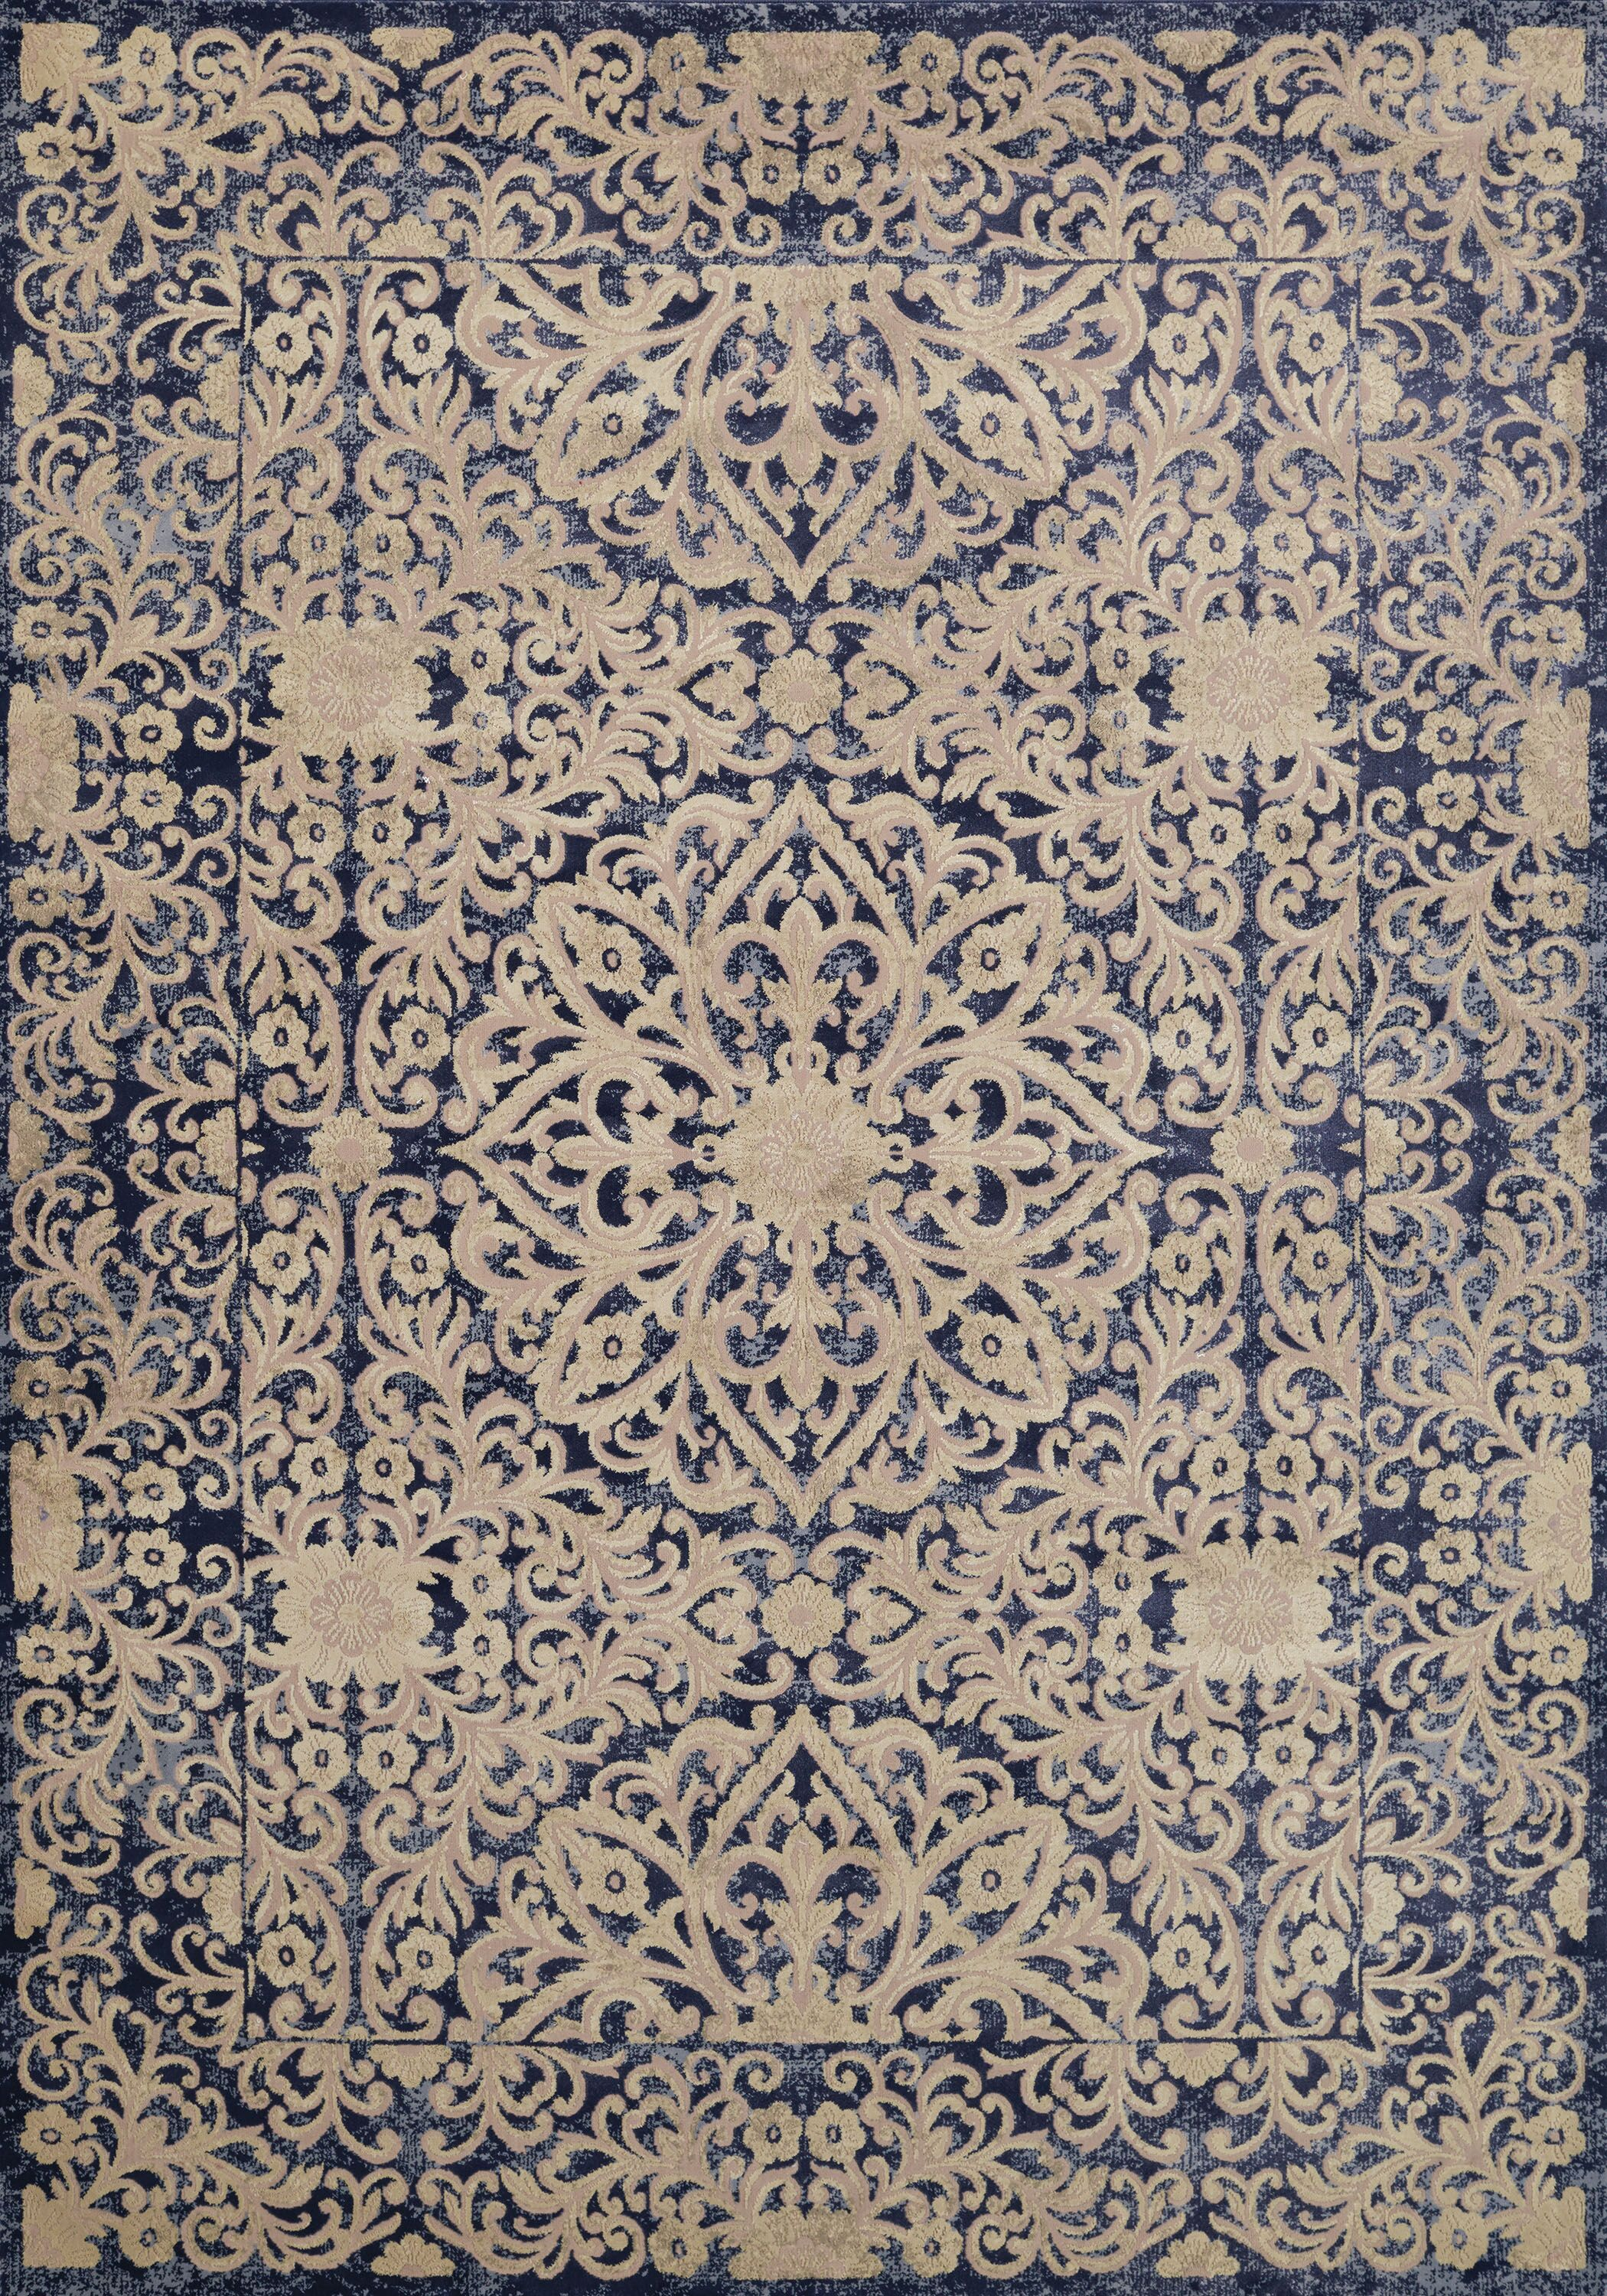 Sevilla Panama Jack Original Blue/Beige Area Rug Rug Size: Rectangle 5'3